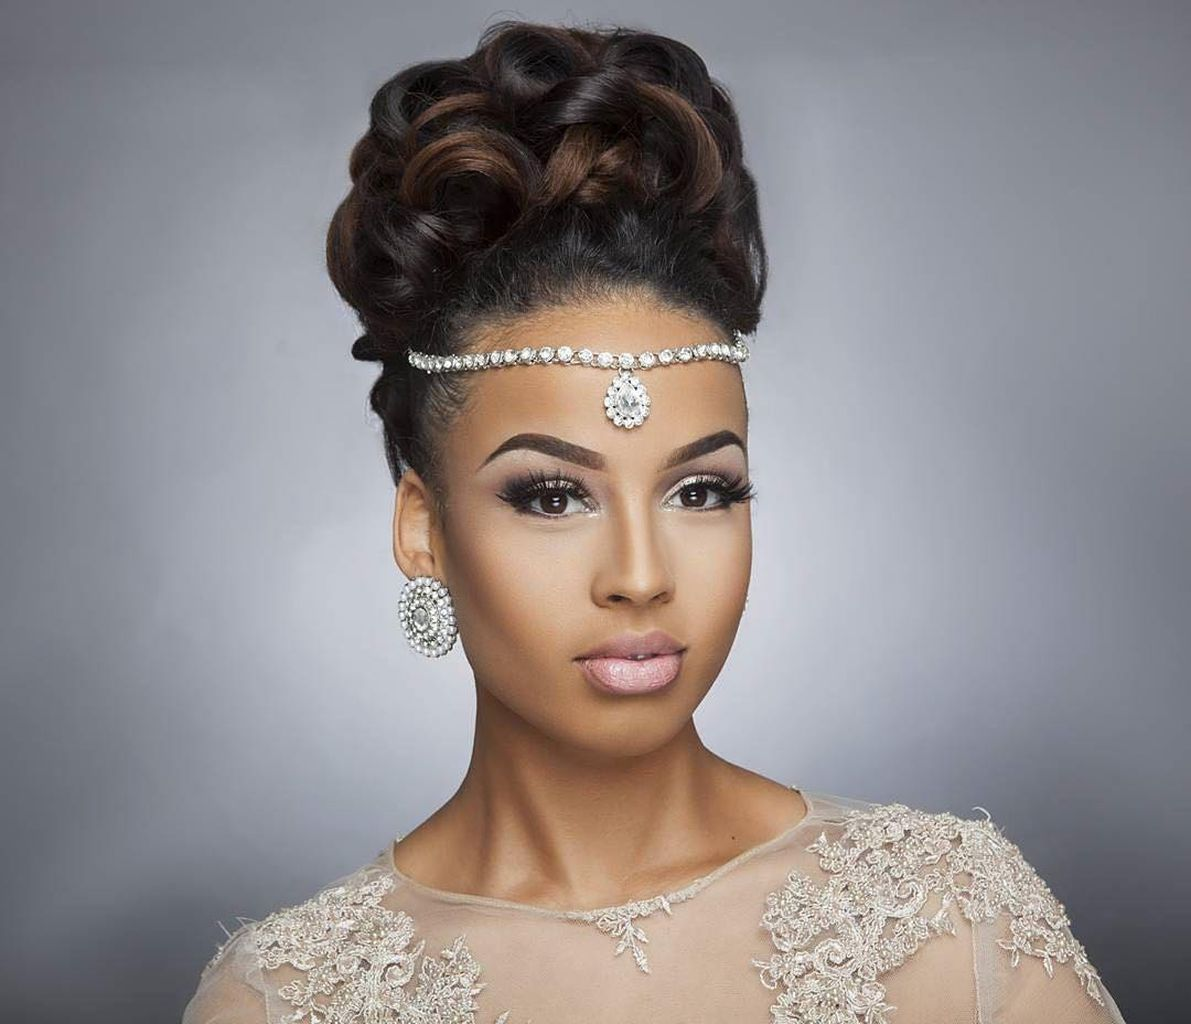 75 Stunning African American Wedding Hairstyle Ideas For Memorable